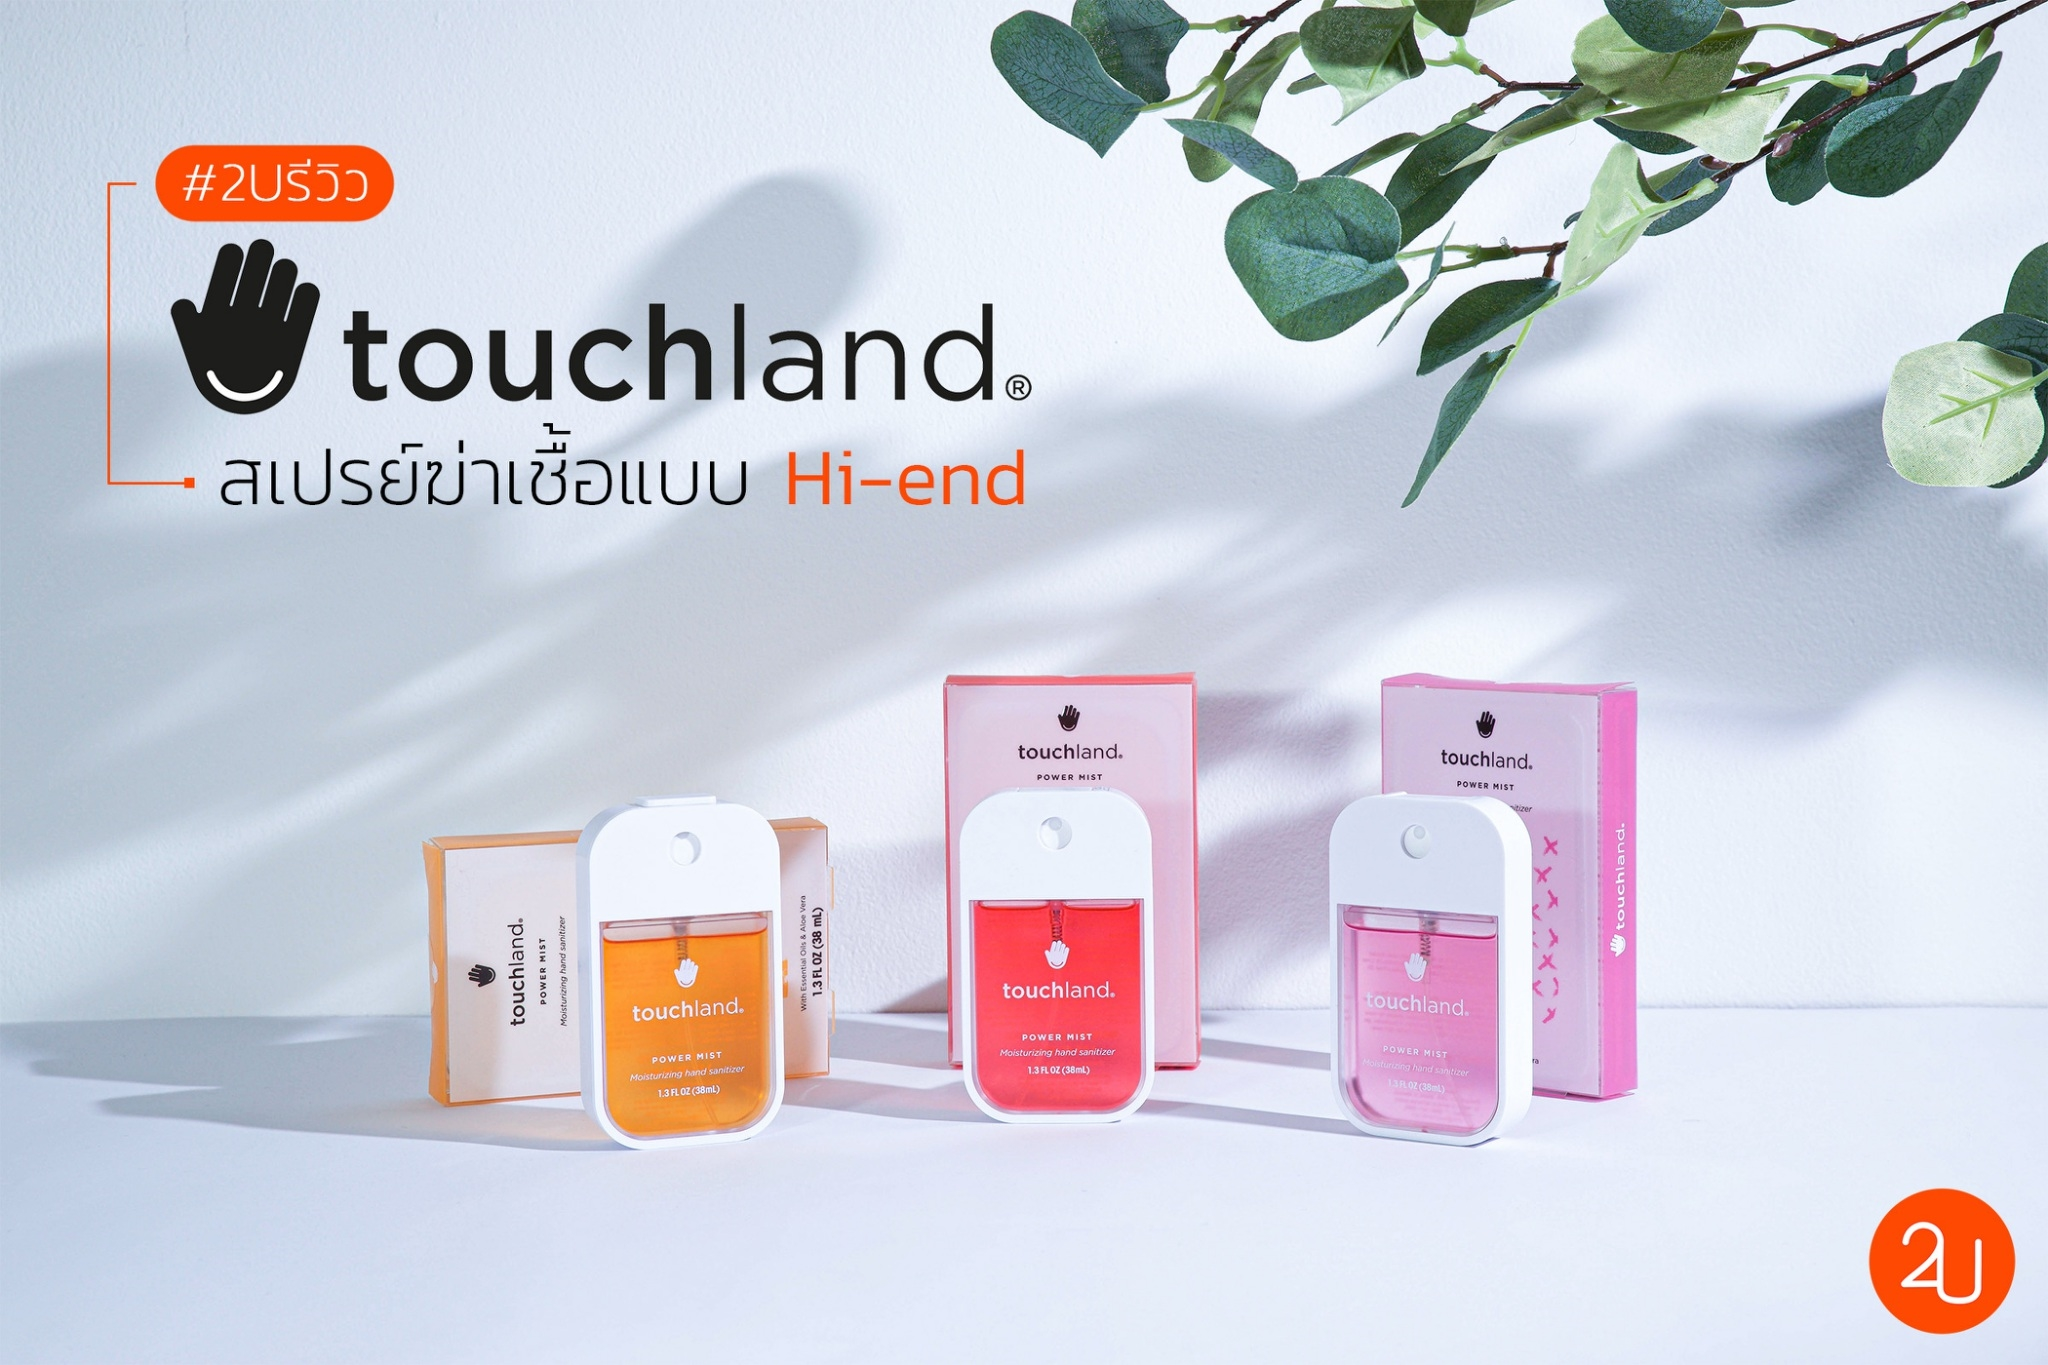 Review Touchland alcohol-spray